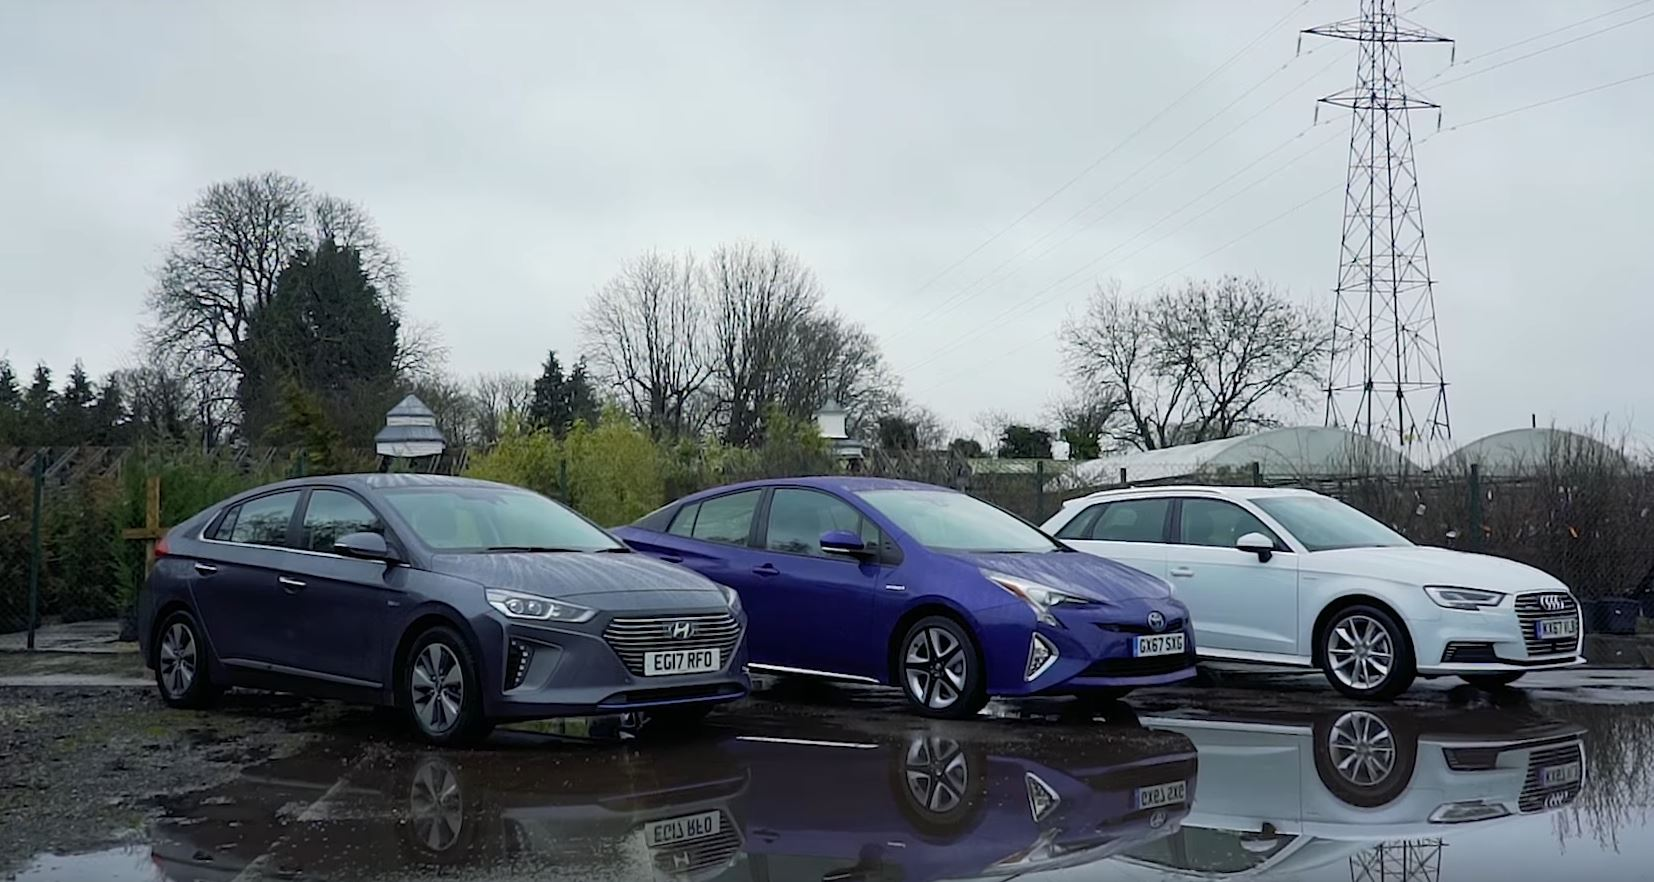 Hyundai Ioniq Toyota Prius And Audi A3 E Tron Reviewed From A Woman S Perspective